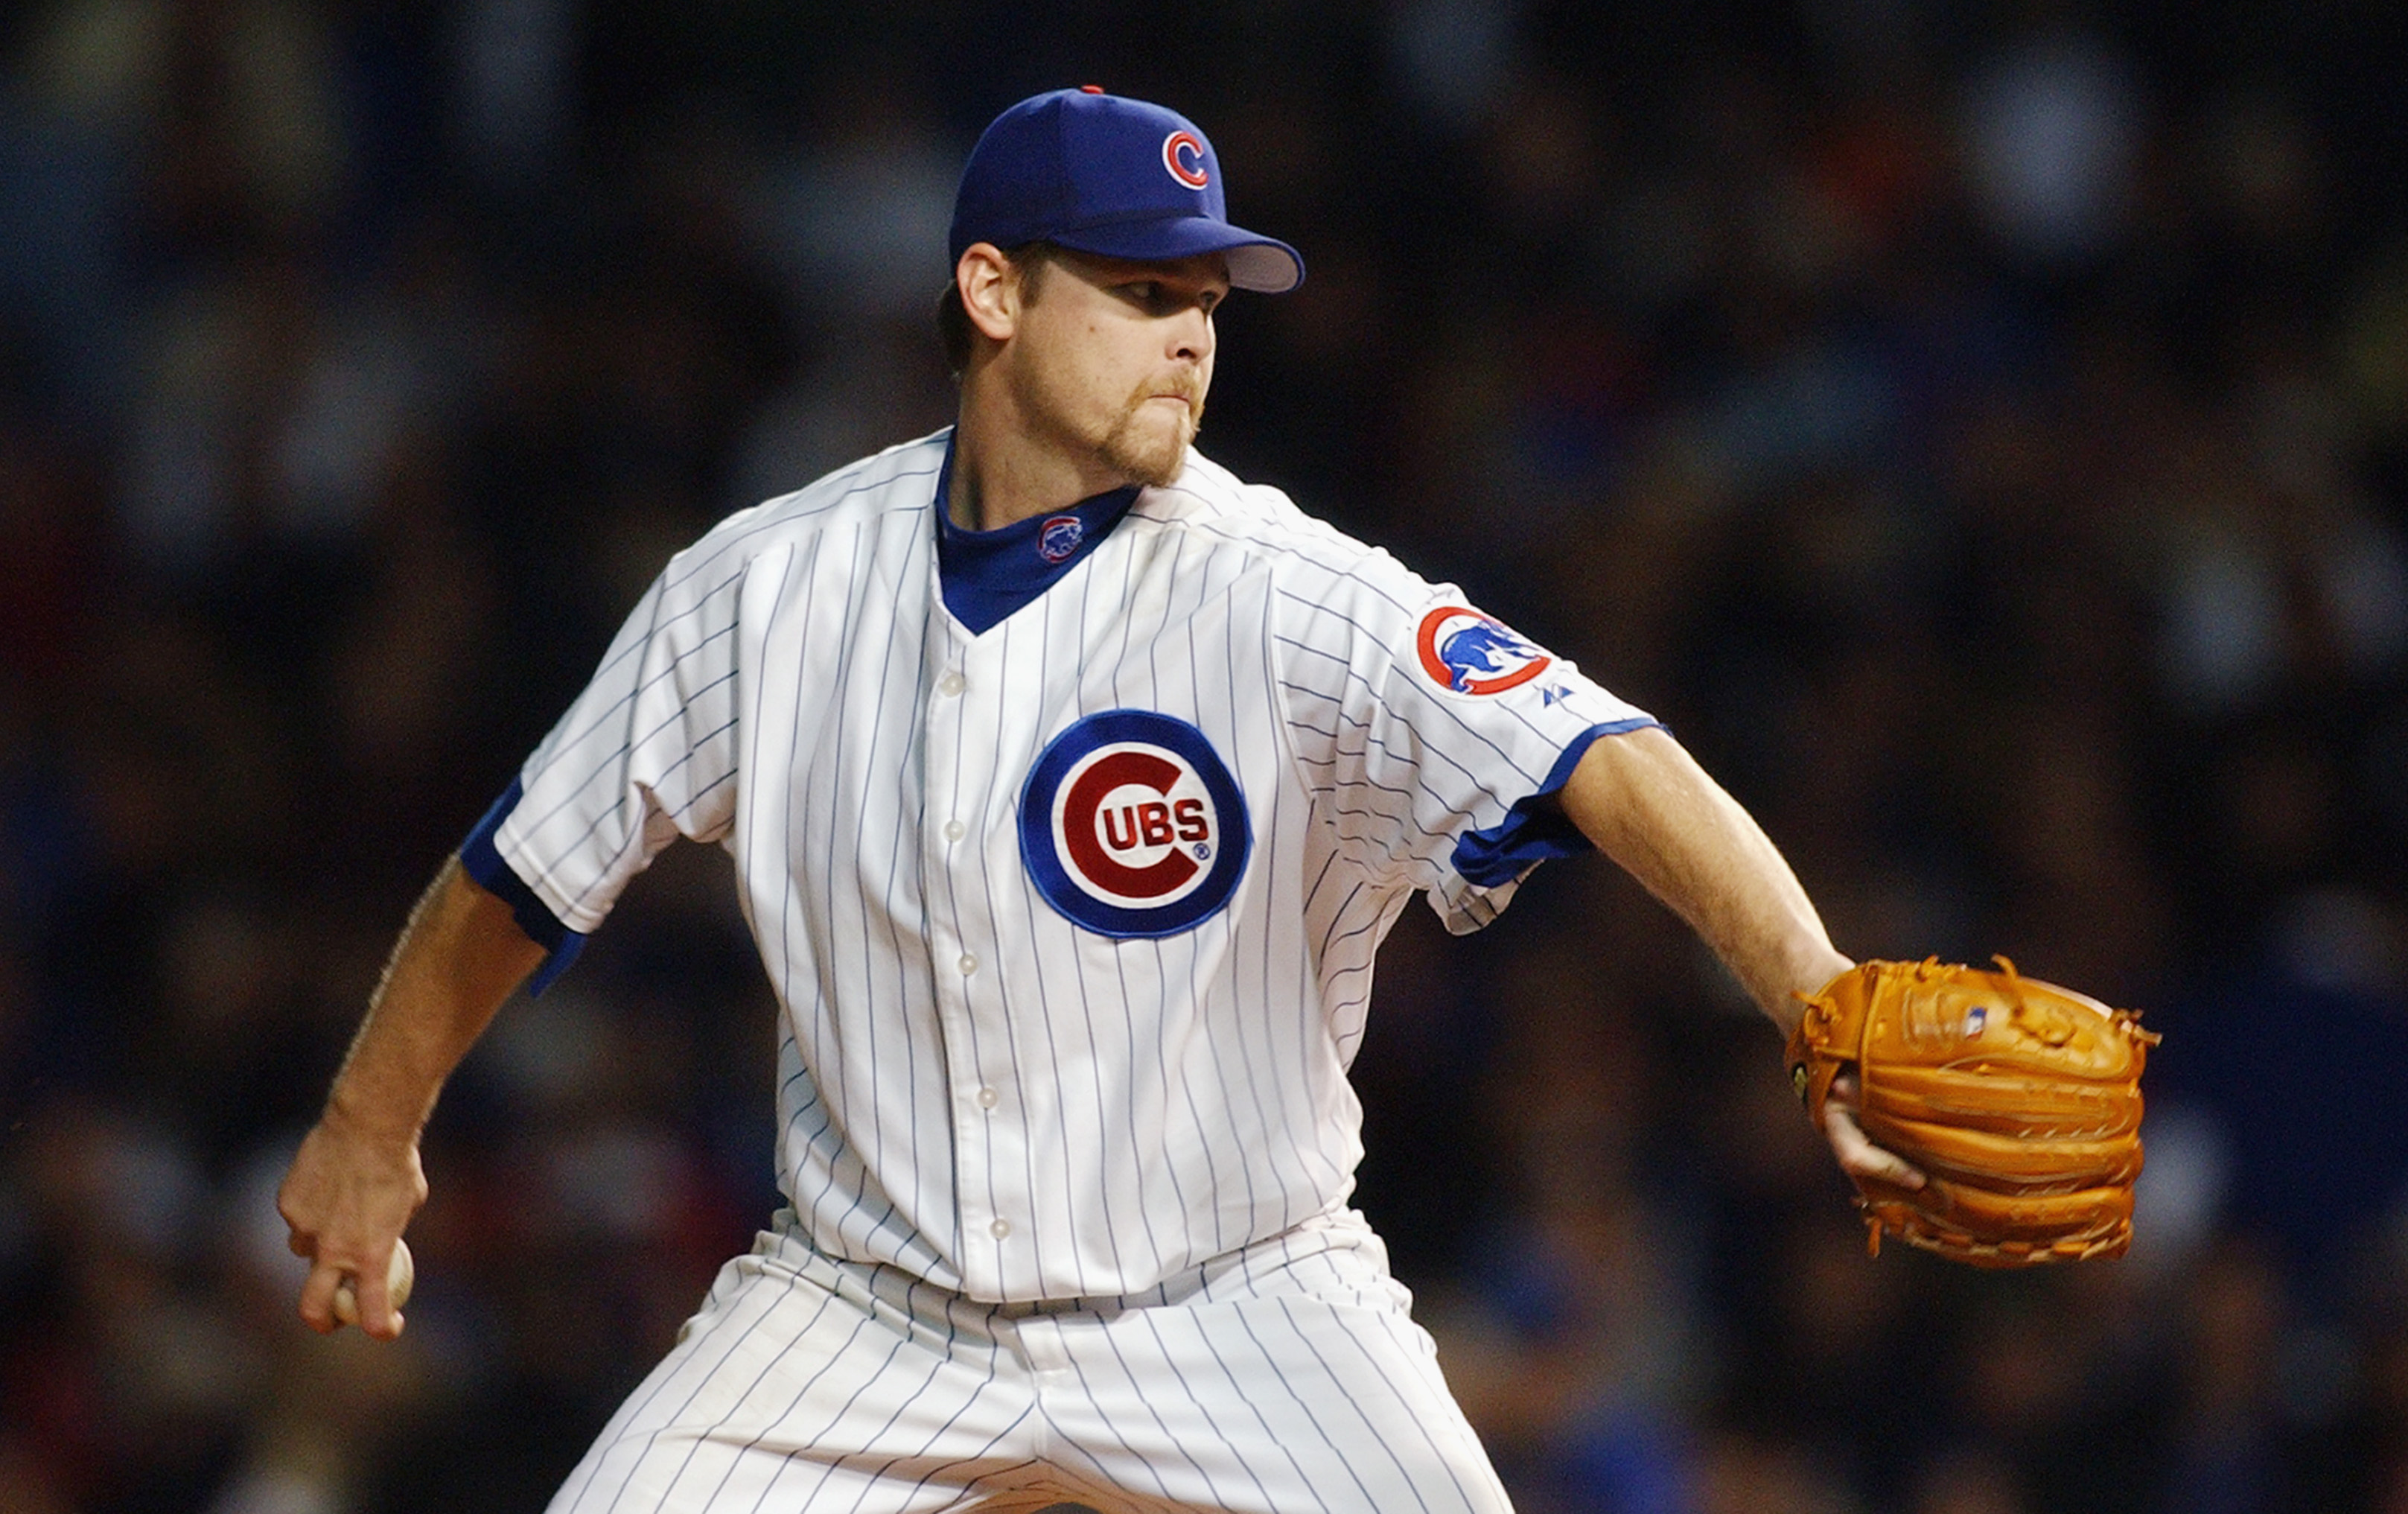 CHICAGO - OCTOBER 15:  Starting pitcher Kerry Wood #34 of the Chicago Cubs throws against the Florida Marlins during game seven of the National League Championship Series on October 15, 2003 at Wrigley Field in Chicago, Illinois.  The Marlins defeated the